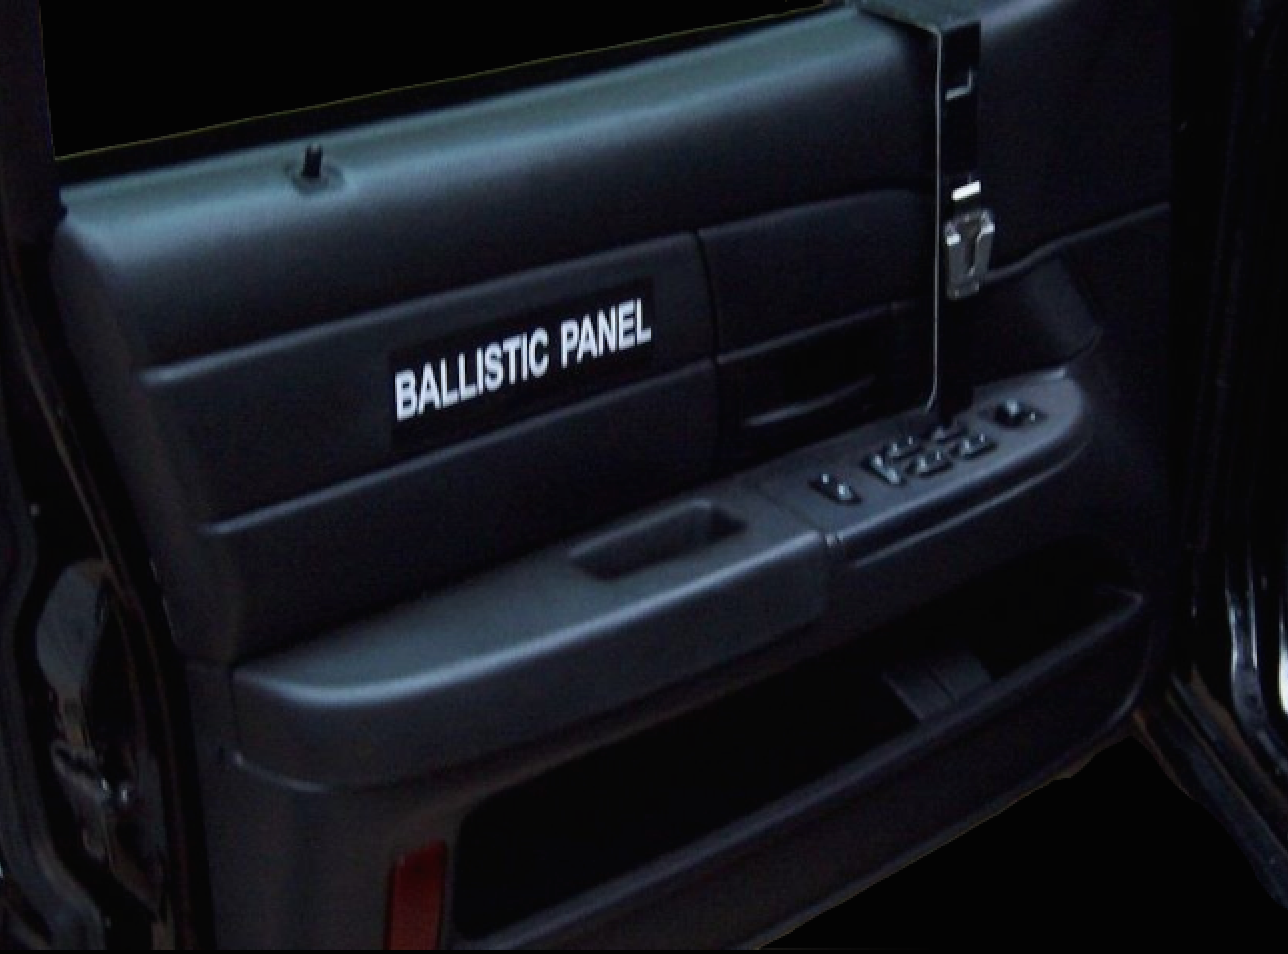 Ballistic Door Panels Unmarked Black Death P71 Owners